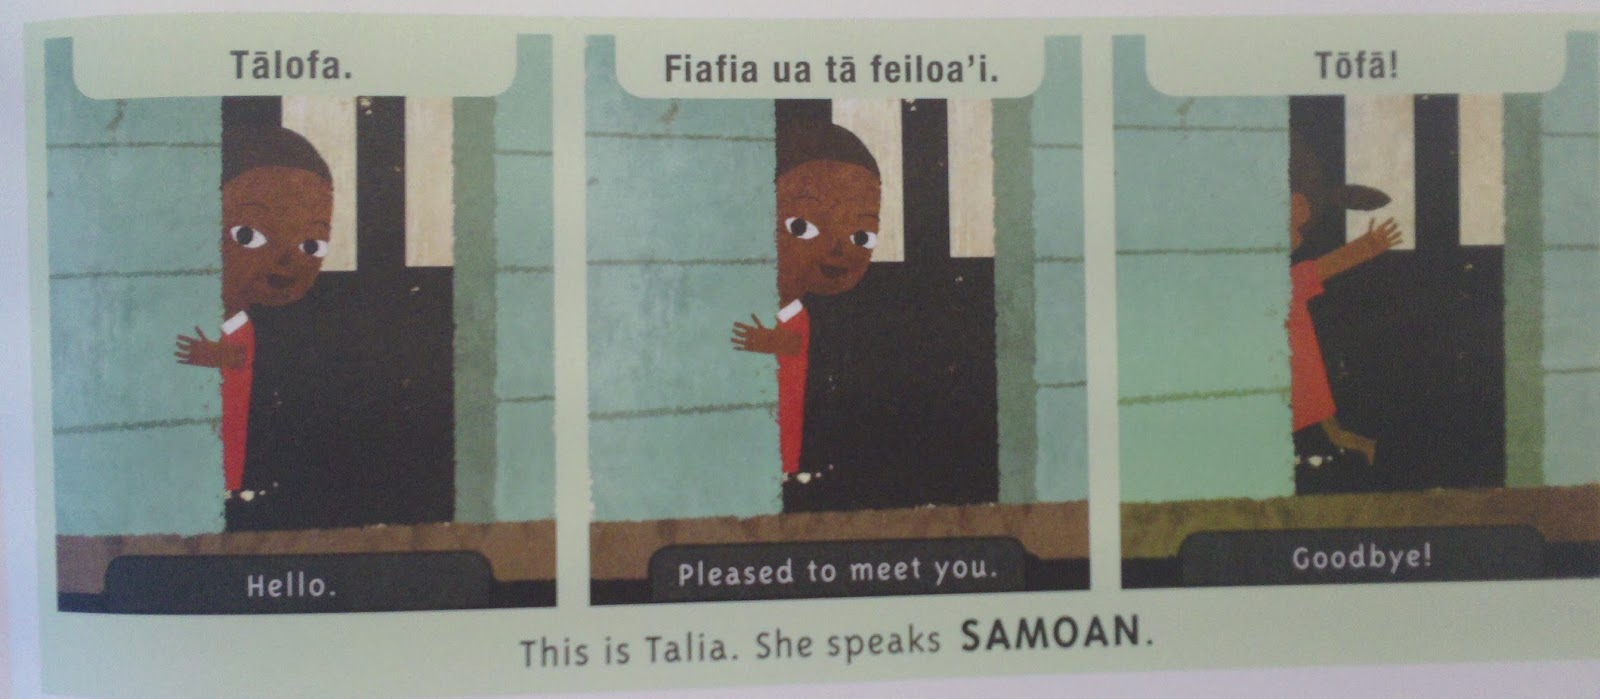 Great books for children hello world simple greetings in over 100 languages this goes way past the common english spanish french etc it even includes on of my favorites samoan m4hsunfo